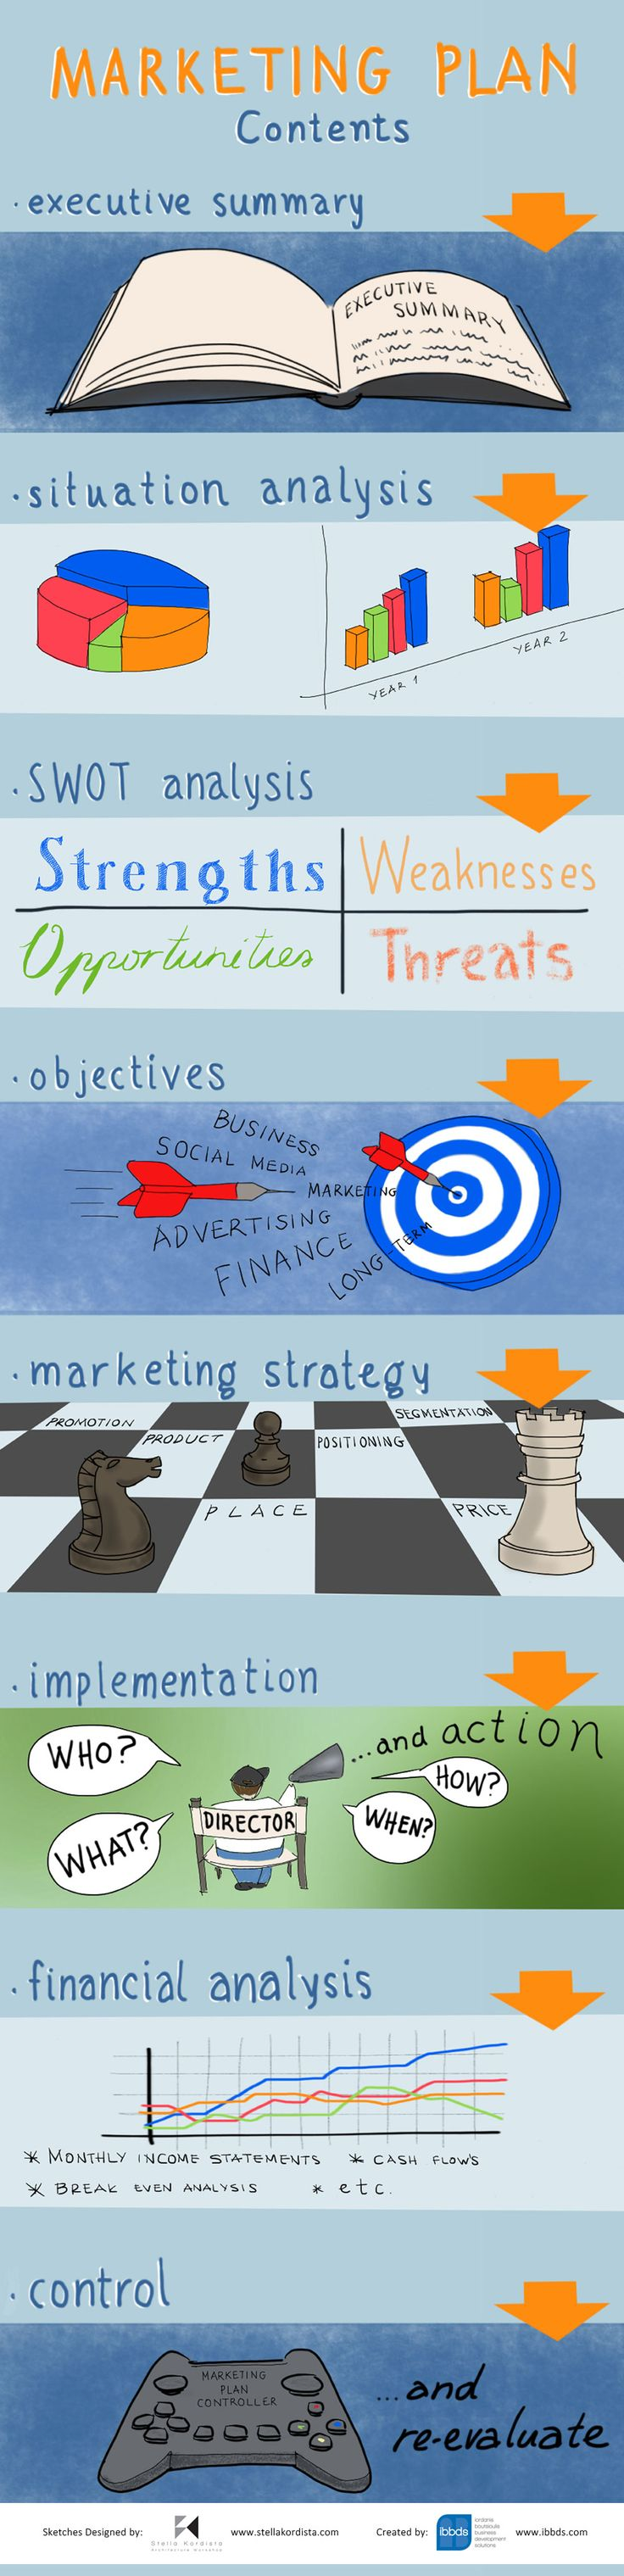 Marketing Plan Infographic  #Marketing #Plan #Infographic